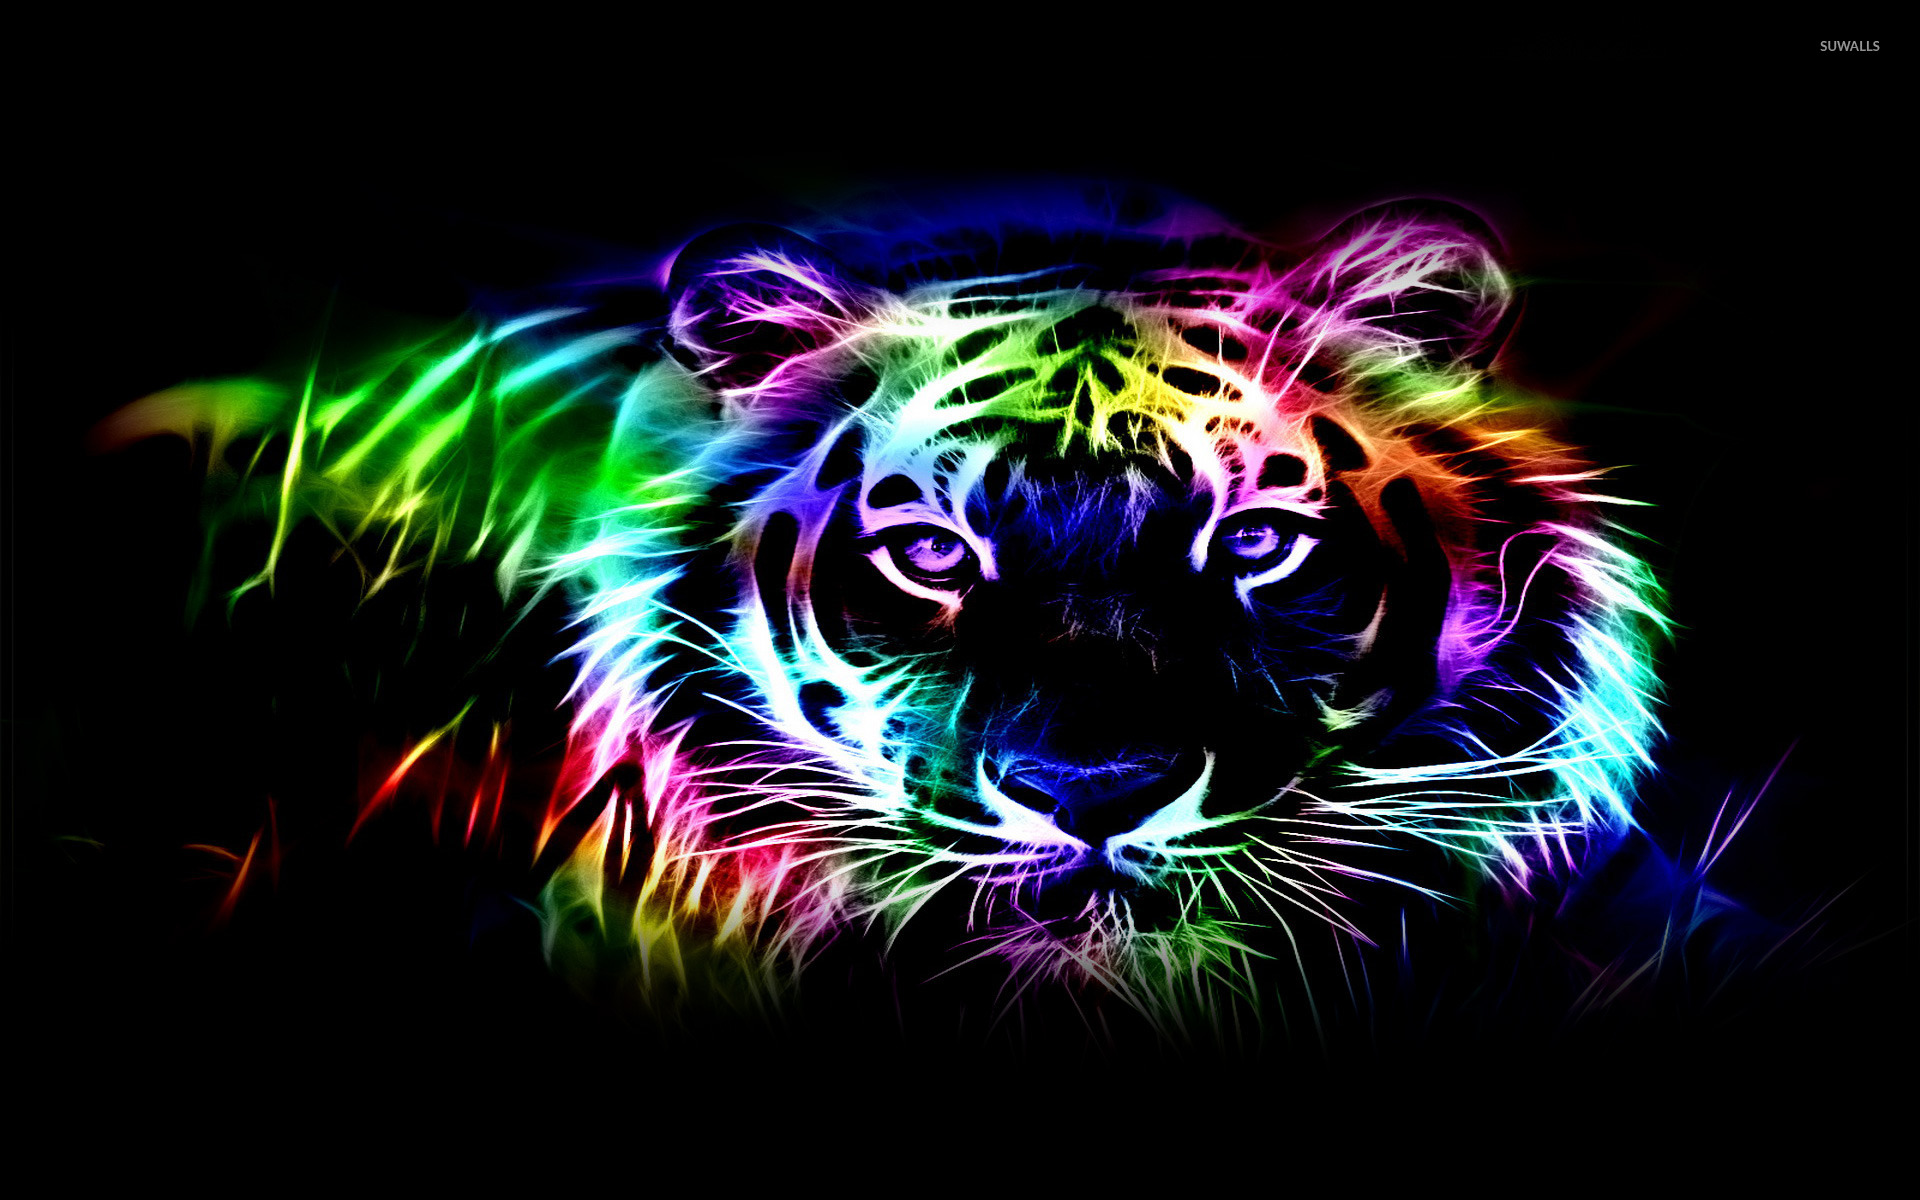 Neon tiger outline wallpaper digital art wallpapers 25440 neon tiger outline wallpaper digital art altavistaventures